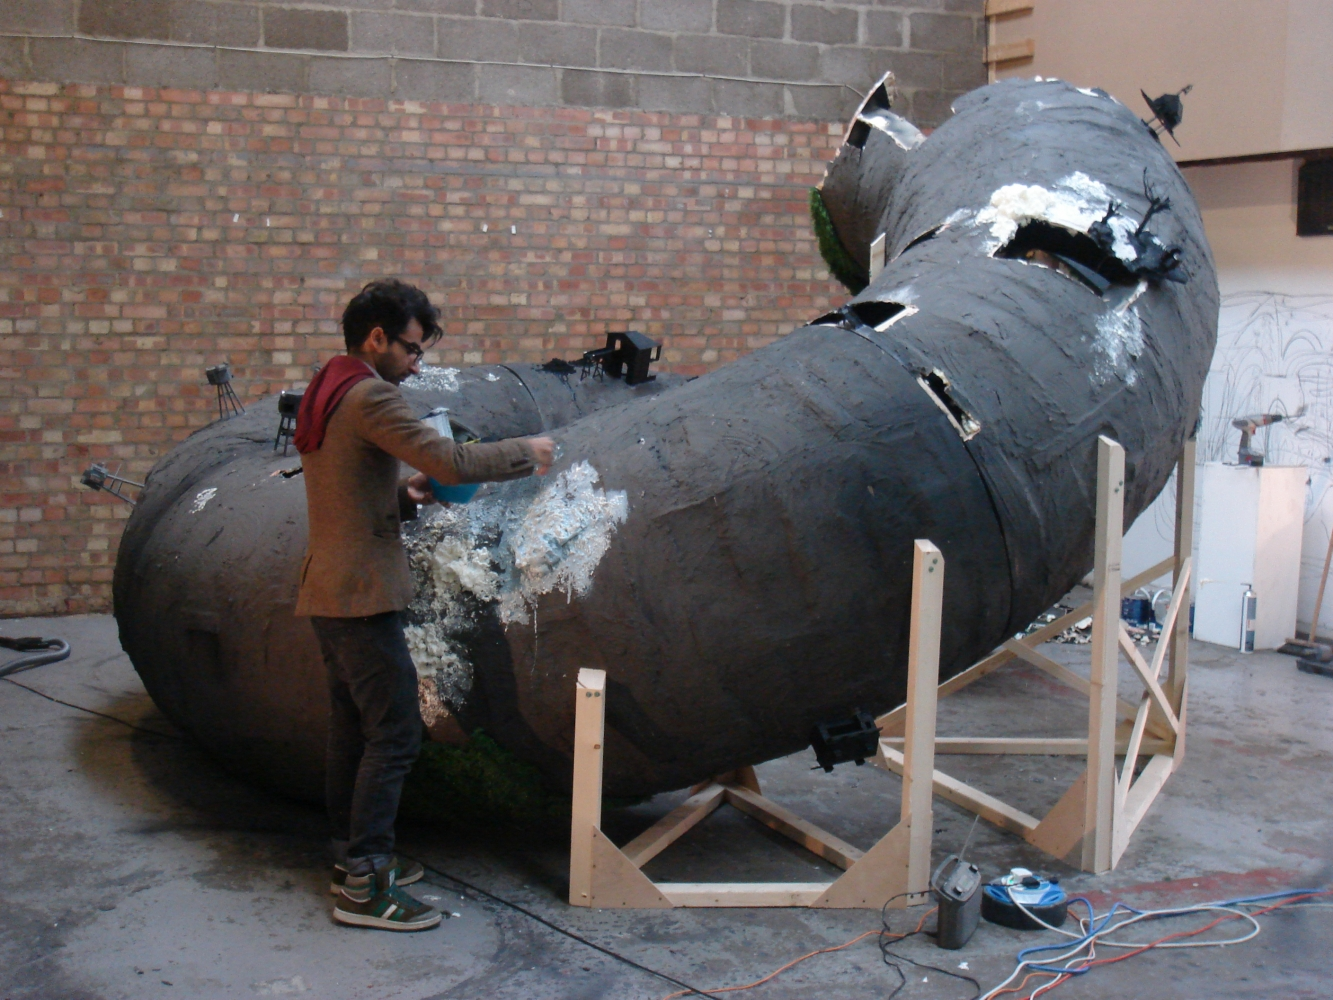 Space Hire Saad Qureshi working on a large-scale commission for Gazelli Art House, London